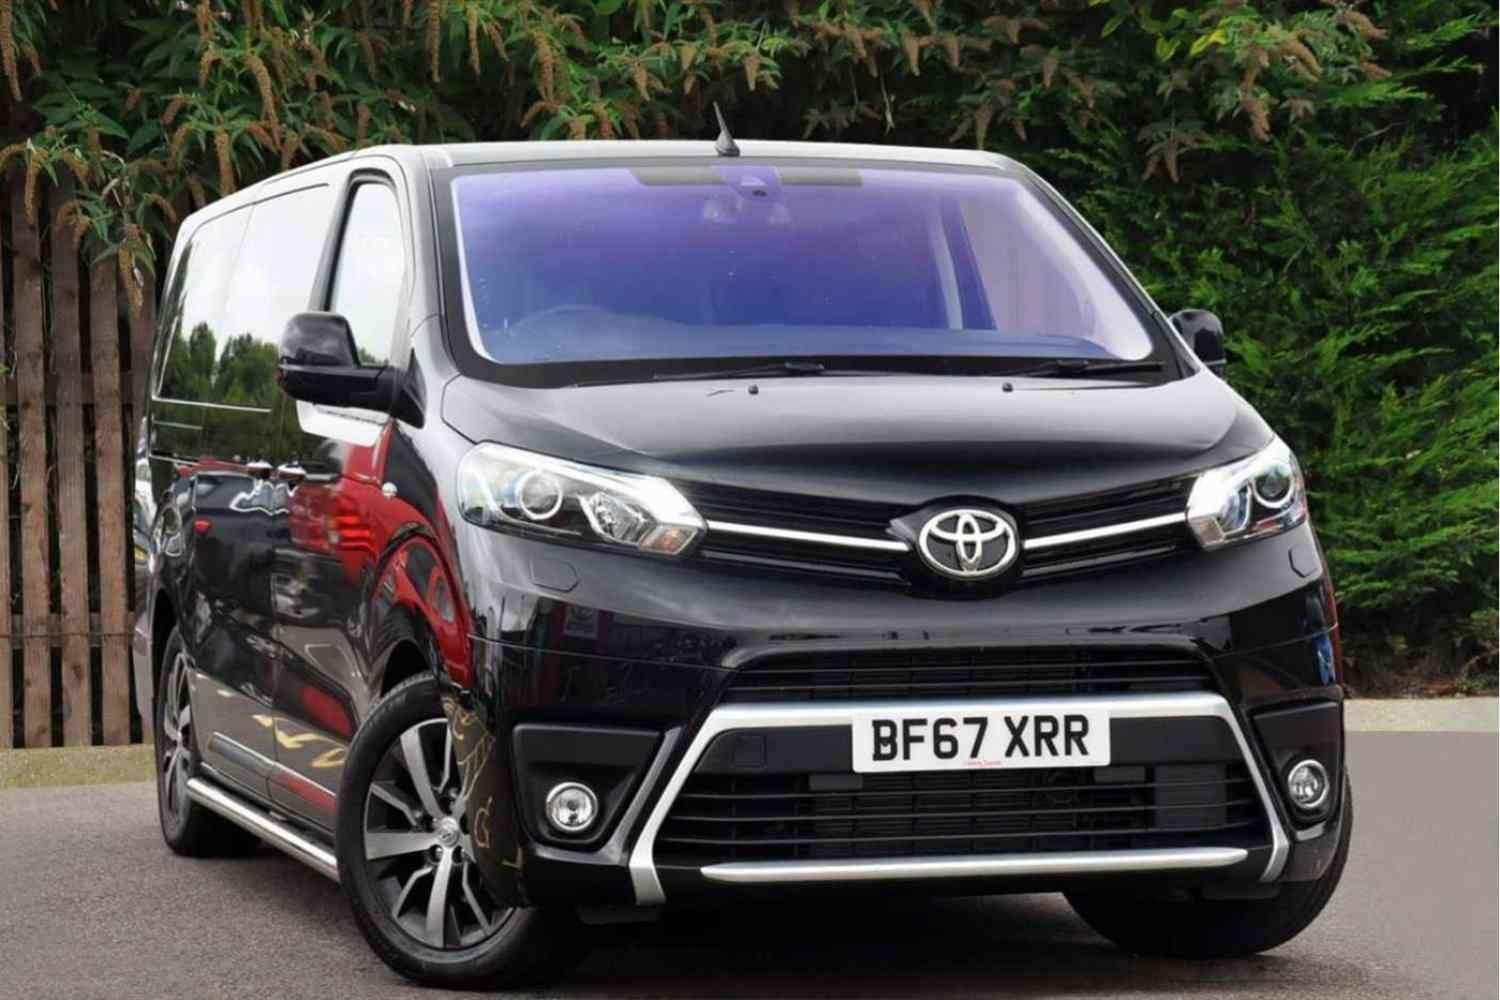 46 Best Review 2019 Toyota Innova Specs with 2019 Toyota Innova